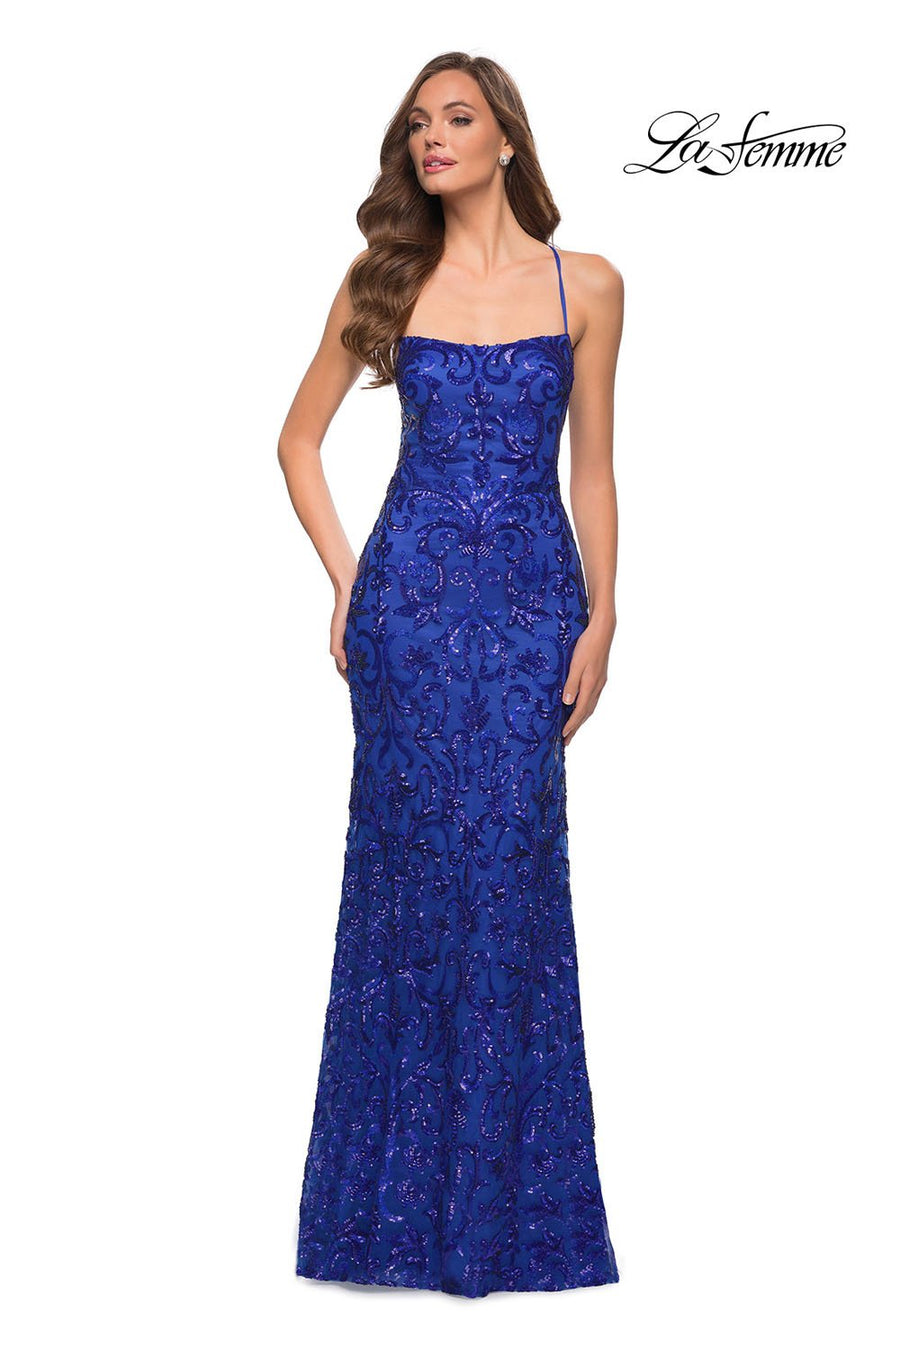 La Femme 29638 prom dress images.  La Femme 29638 is available in these colors: Black, Dark Emerald, Red, Royal Blue.